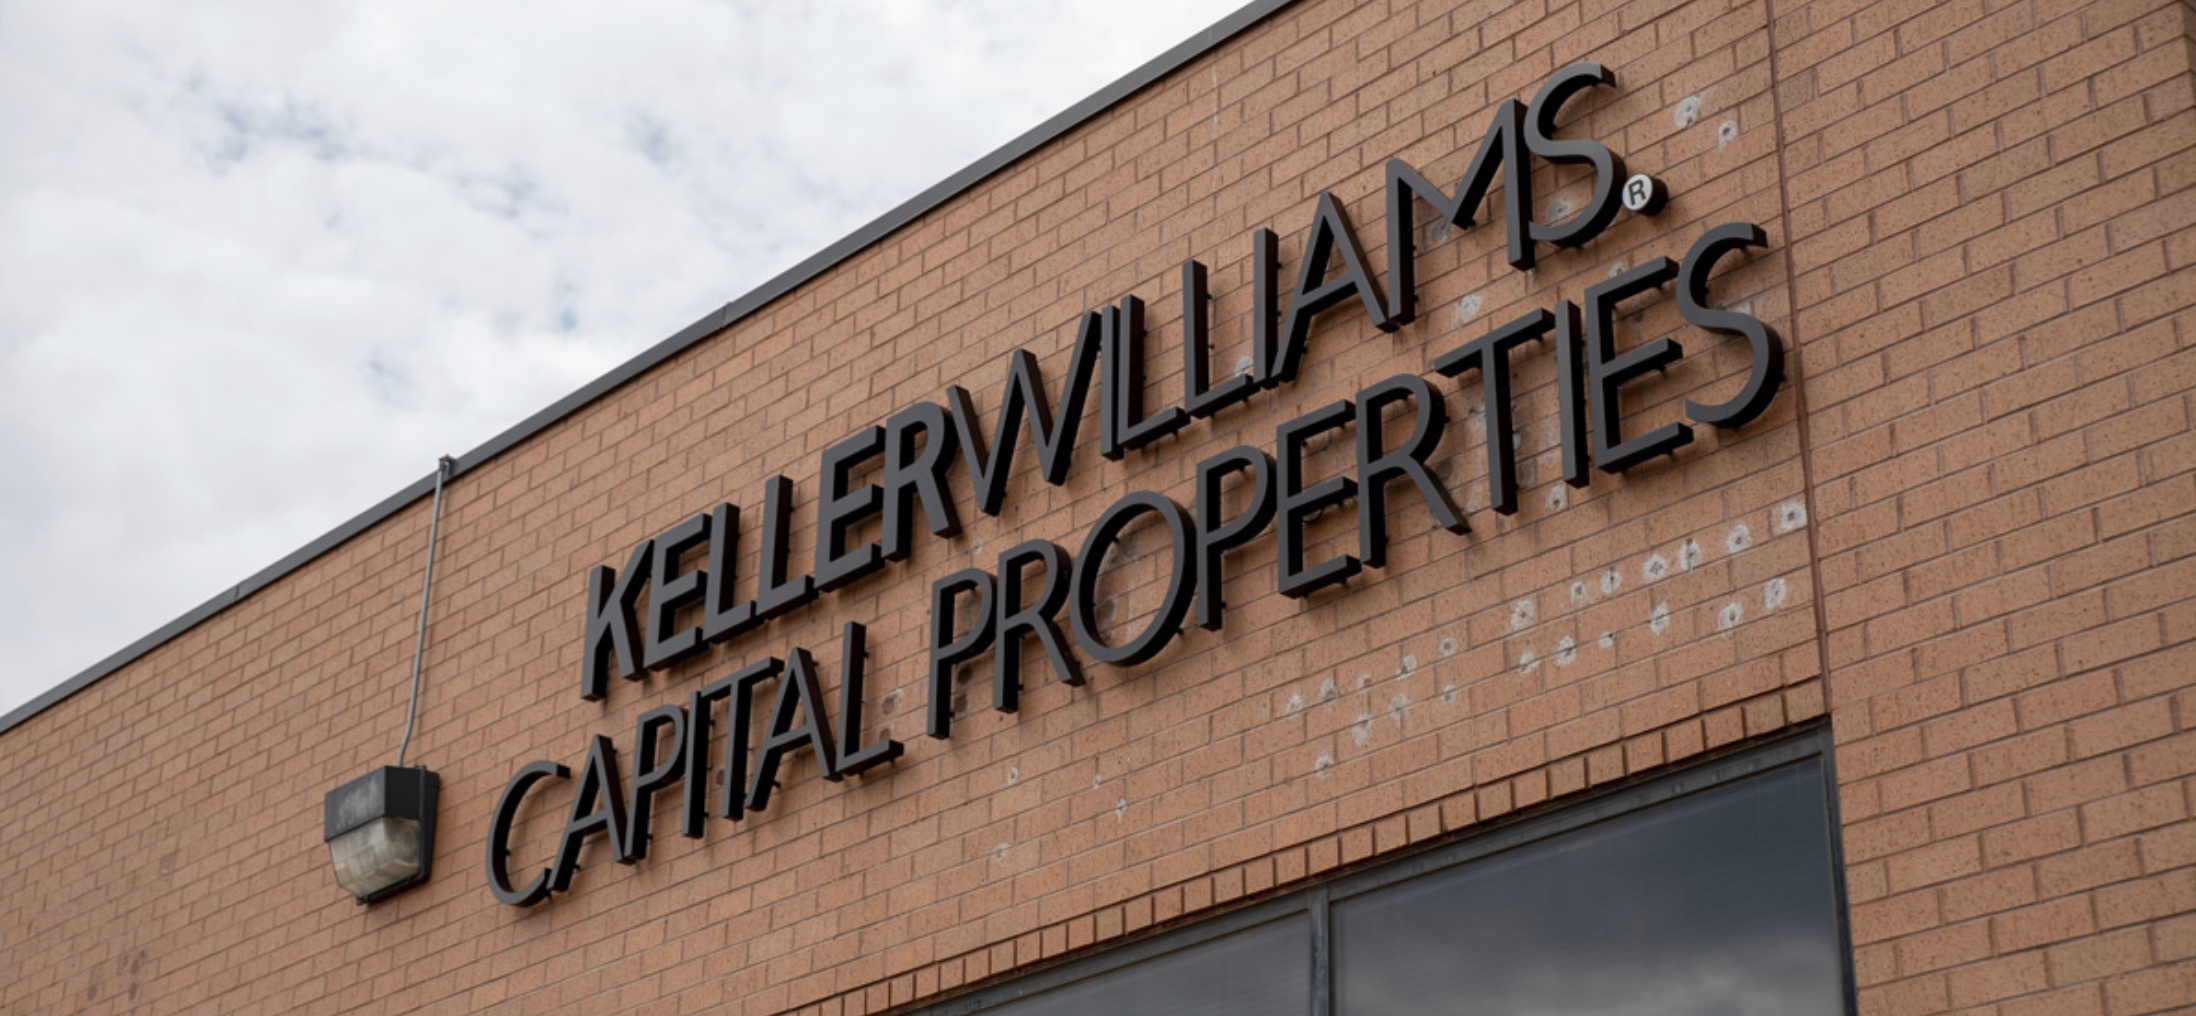 KW Capital Properties in Rockville